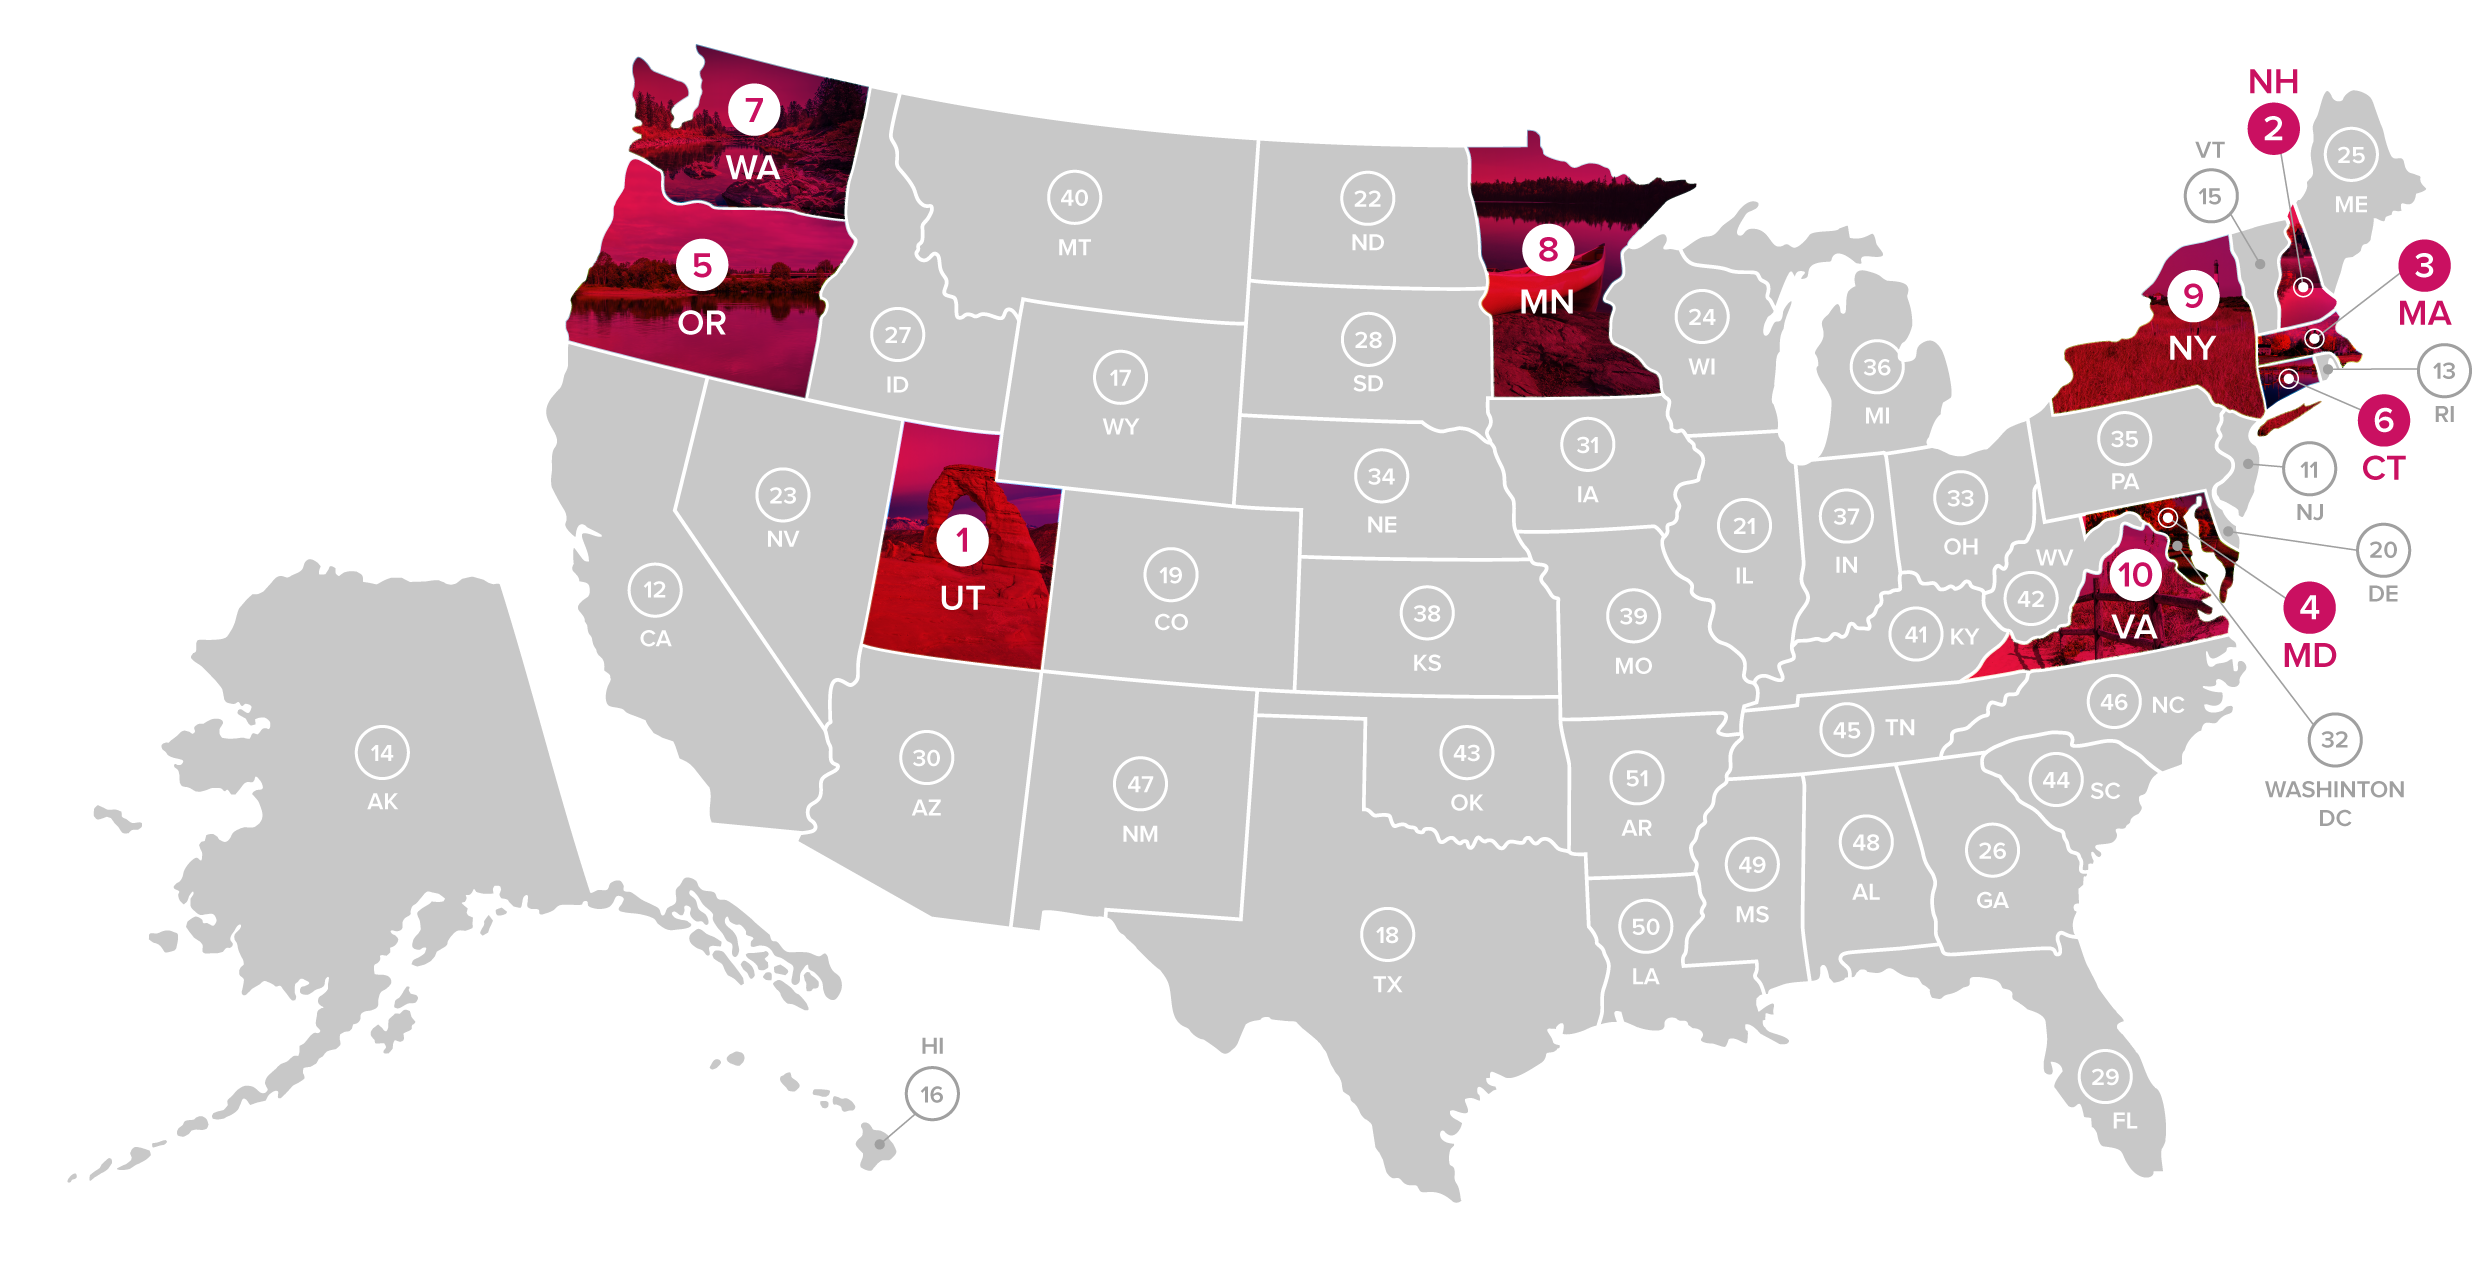 map showing the top 10 most connected states